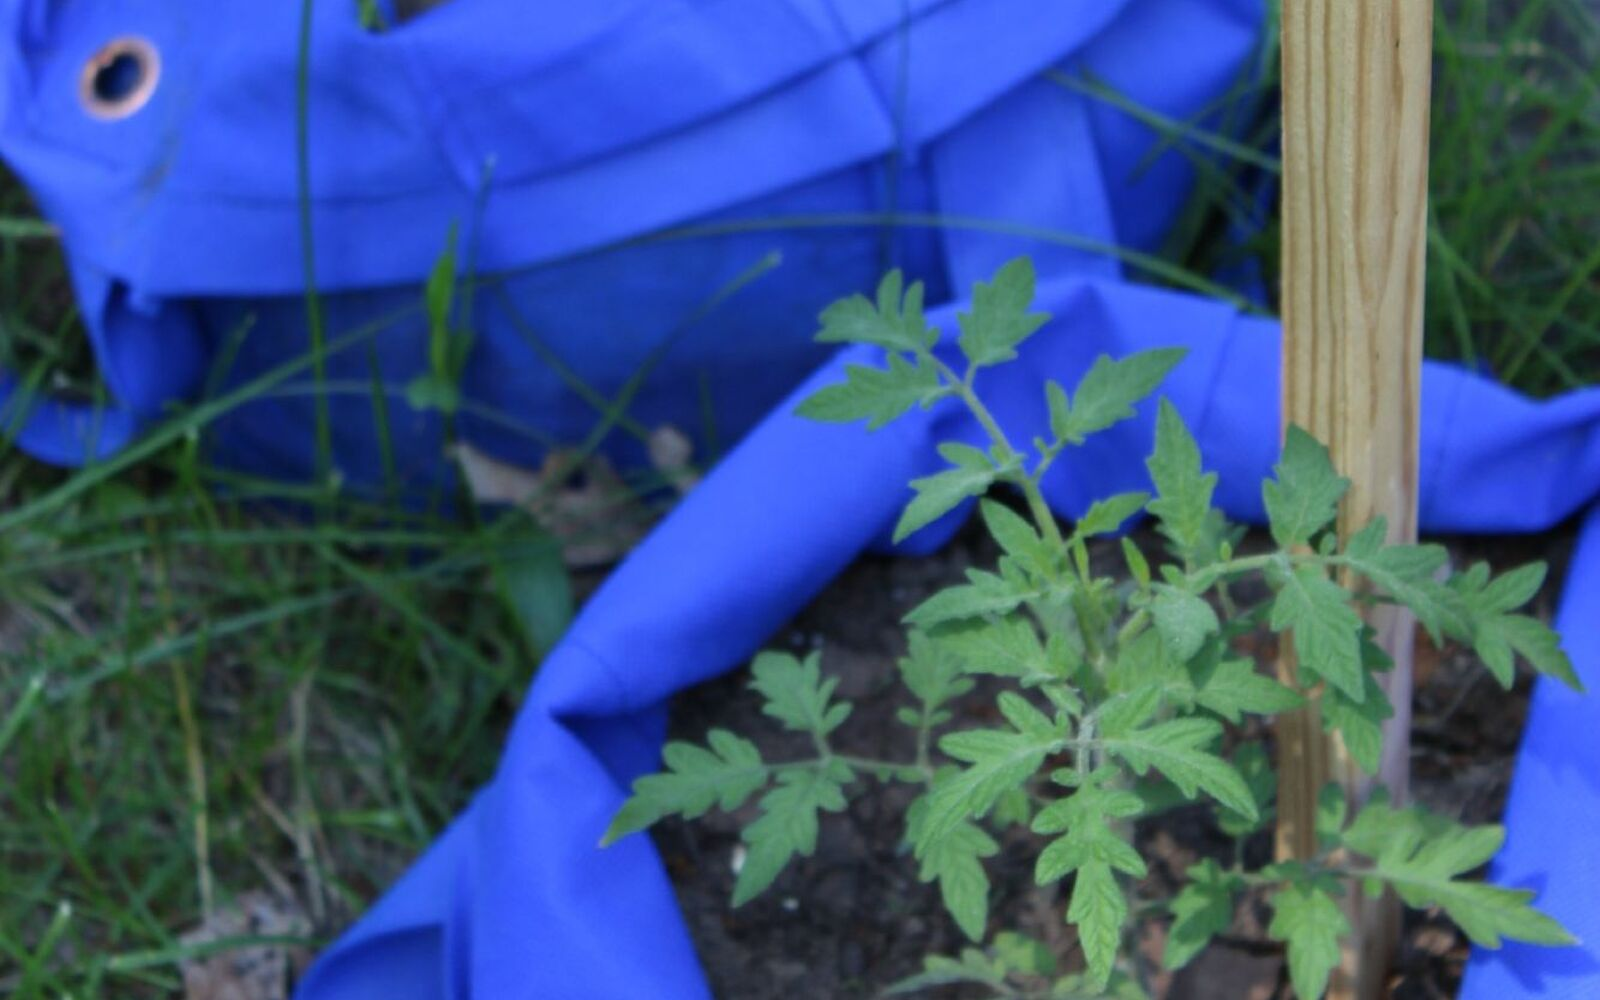 s the easiest ways to grow a bumper crop of tomatoes, Grow them in recycle bags